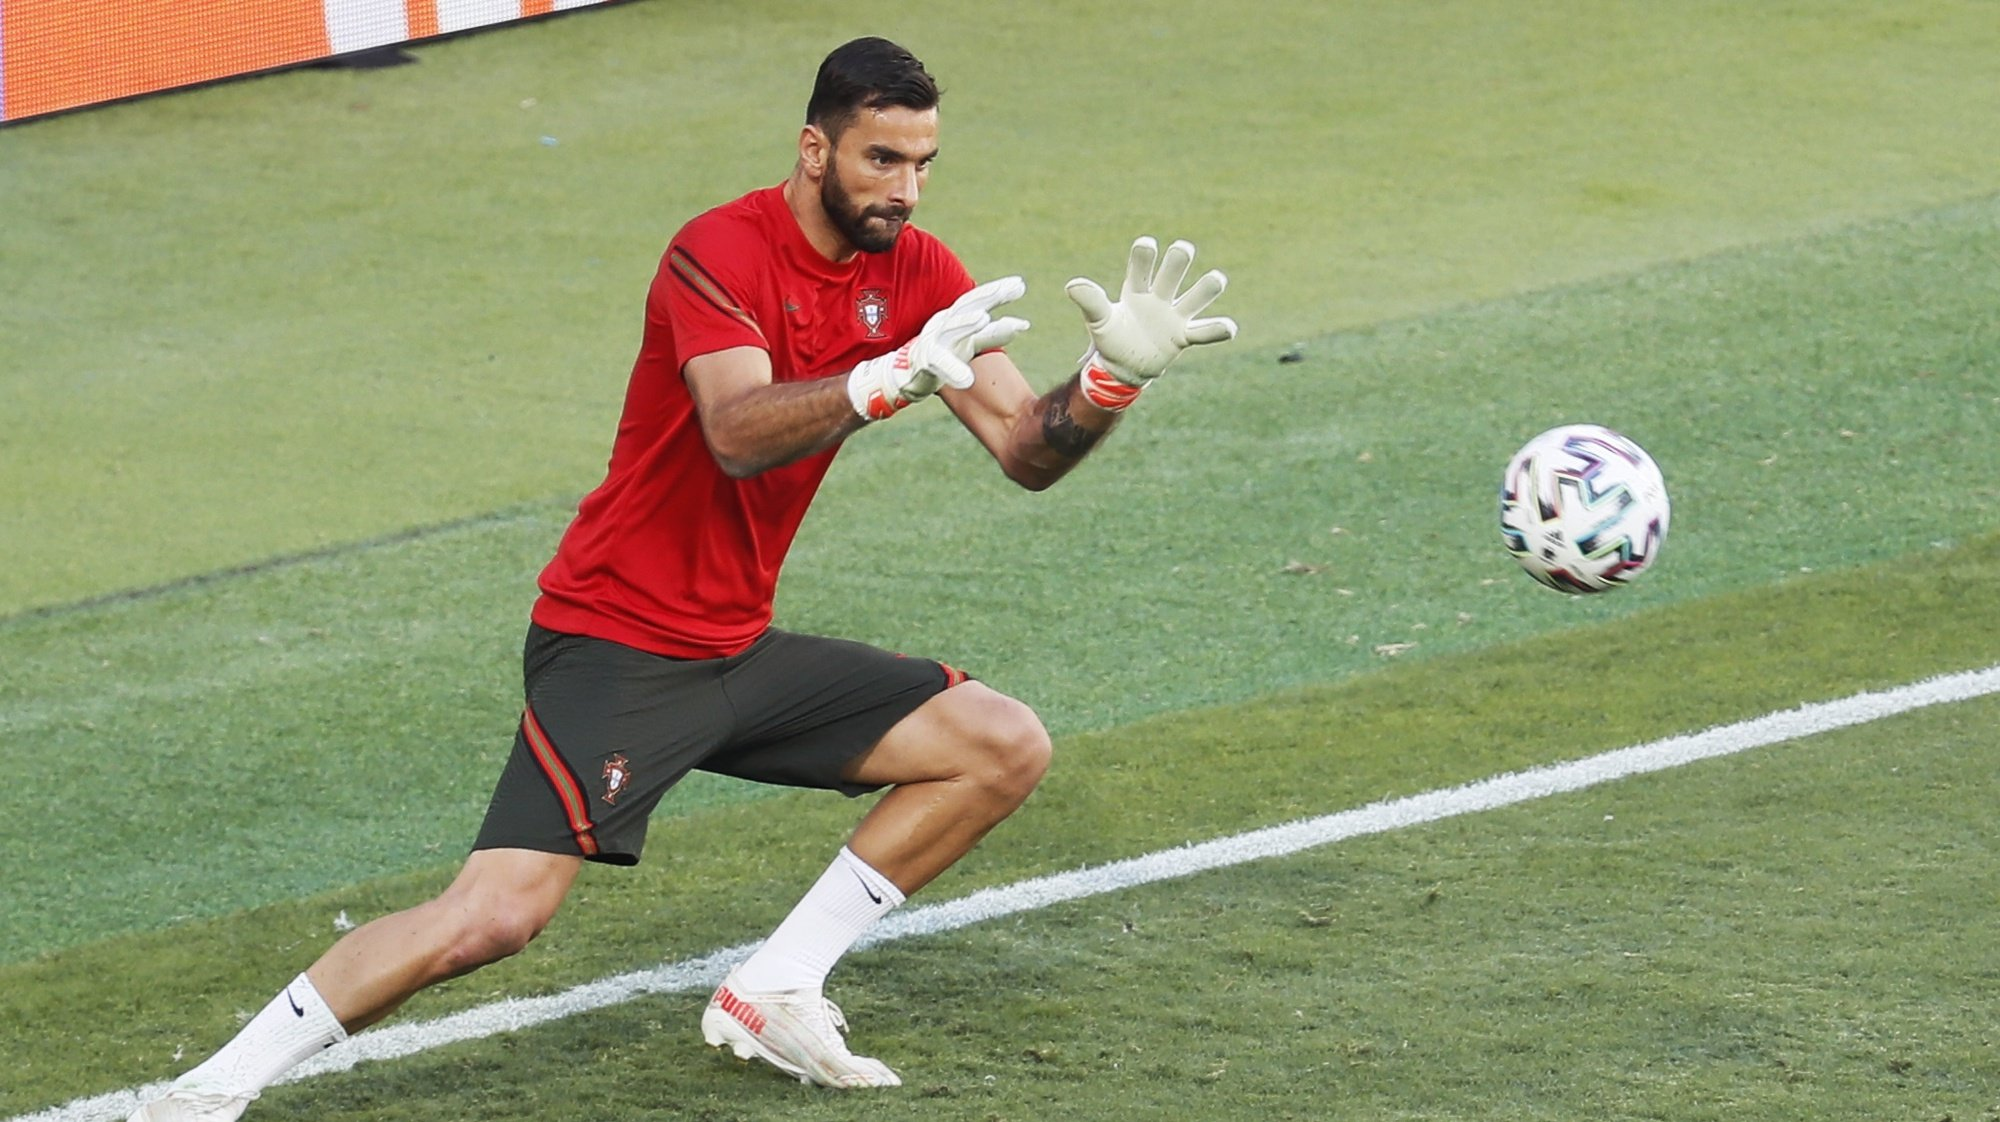 epa09303613 Goalkeeper Rui Patricio of Portugal attends a training session in Seville, Spain, 26 June 2021. Portugal will face Belgium in their UEFA EURO 2020 round of 16 soccer match on 27 June 2021.  EPA/Jose Manuel Vidal / POOL